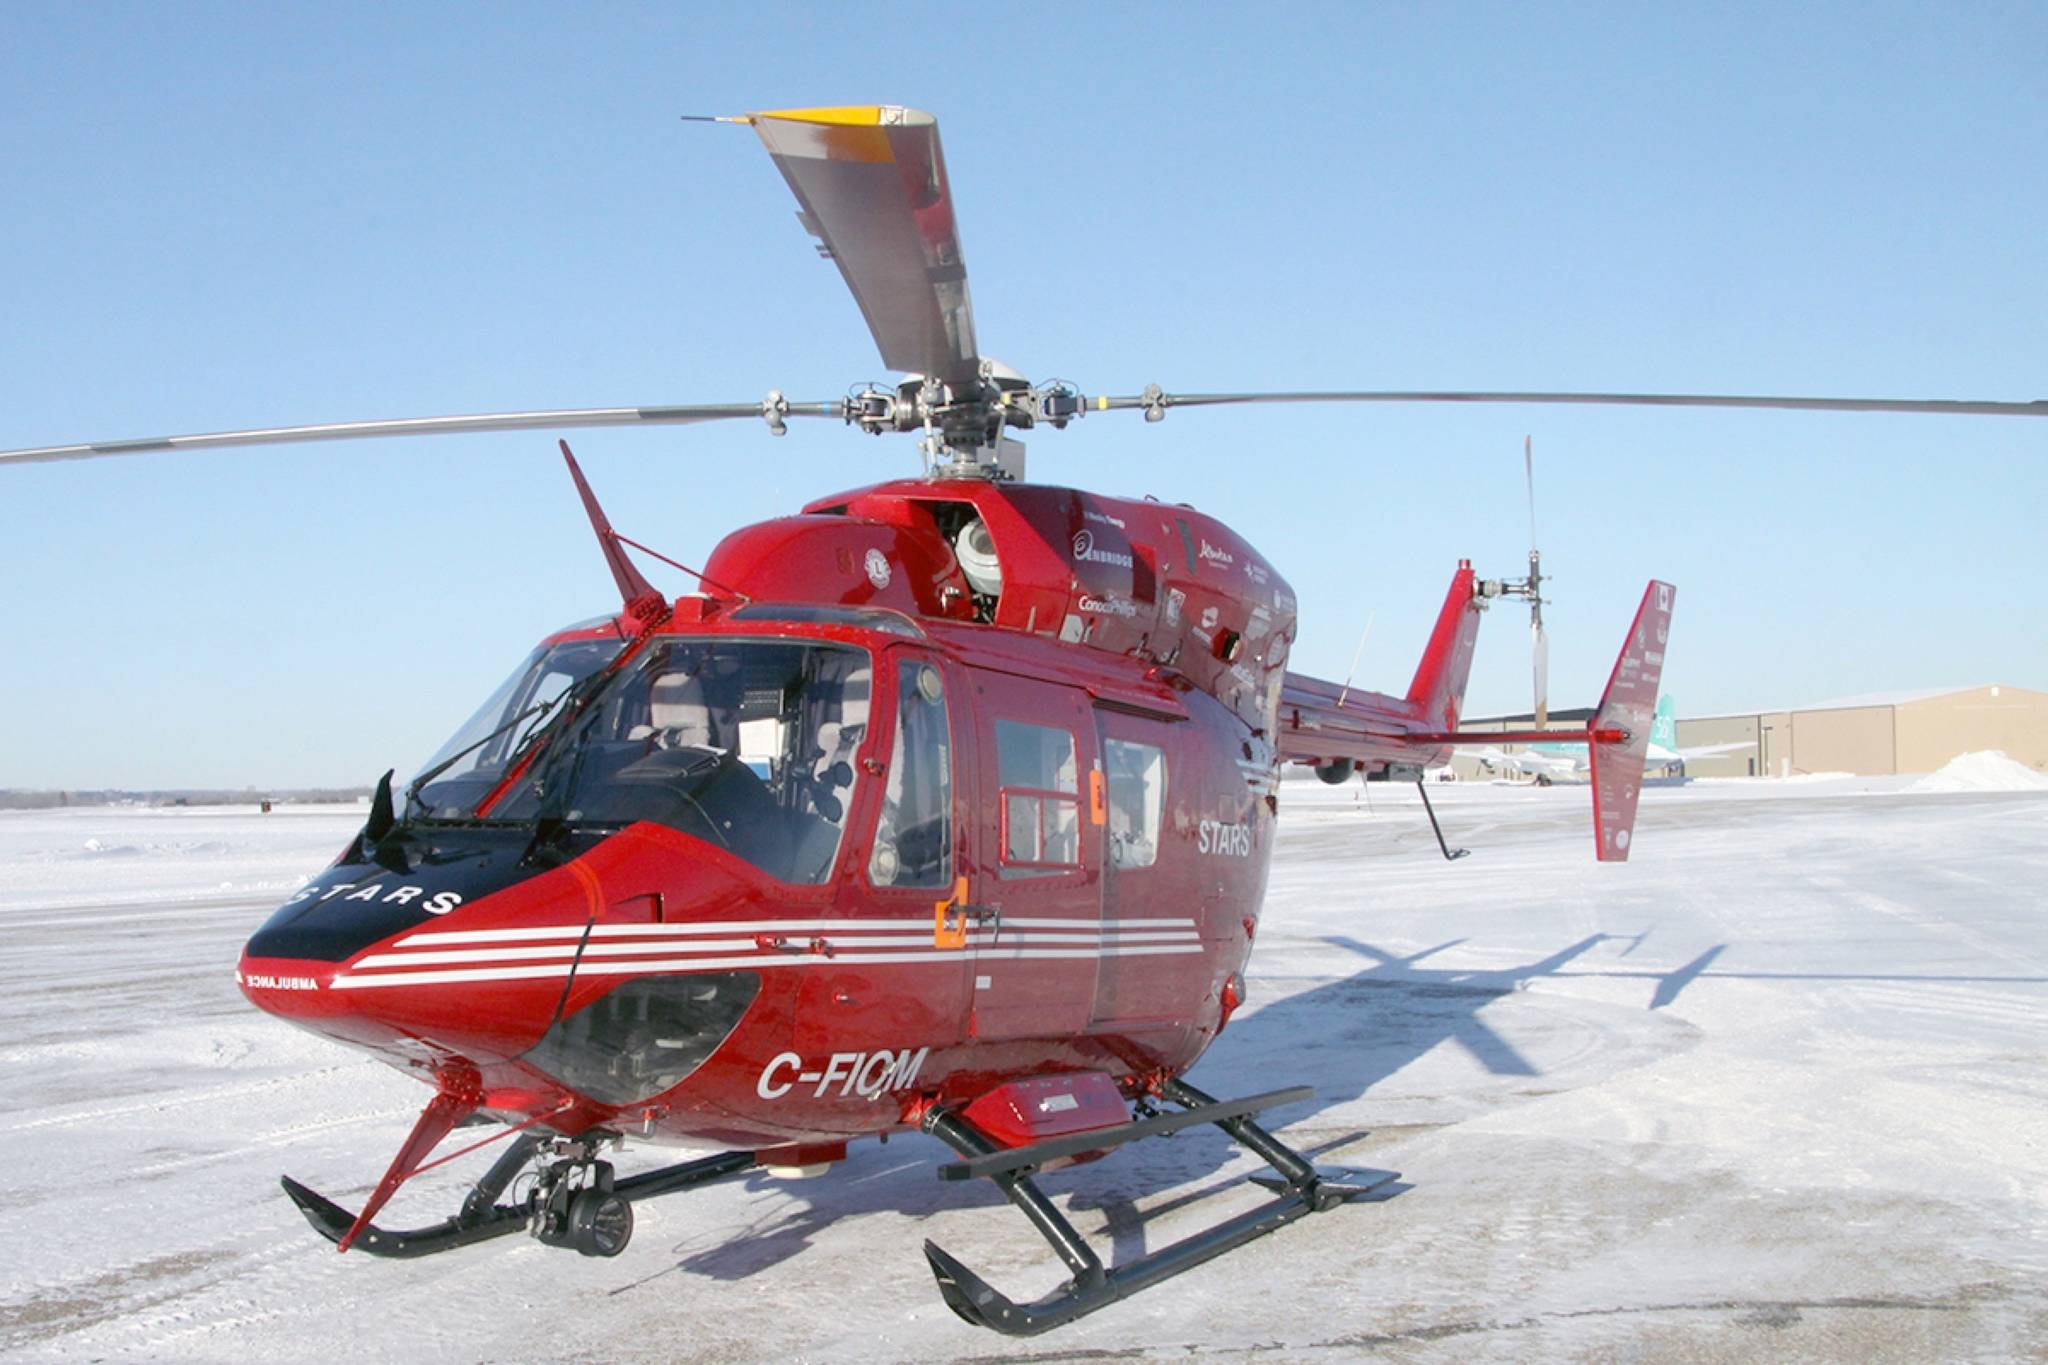 STARS operates 11 helicopters in Alberta and flew more than 1,500 missions during the last fiscal year. (Todd Colin Vaughan/Black Press)